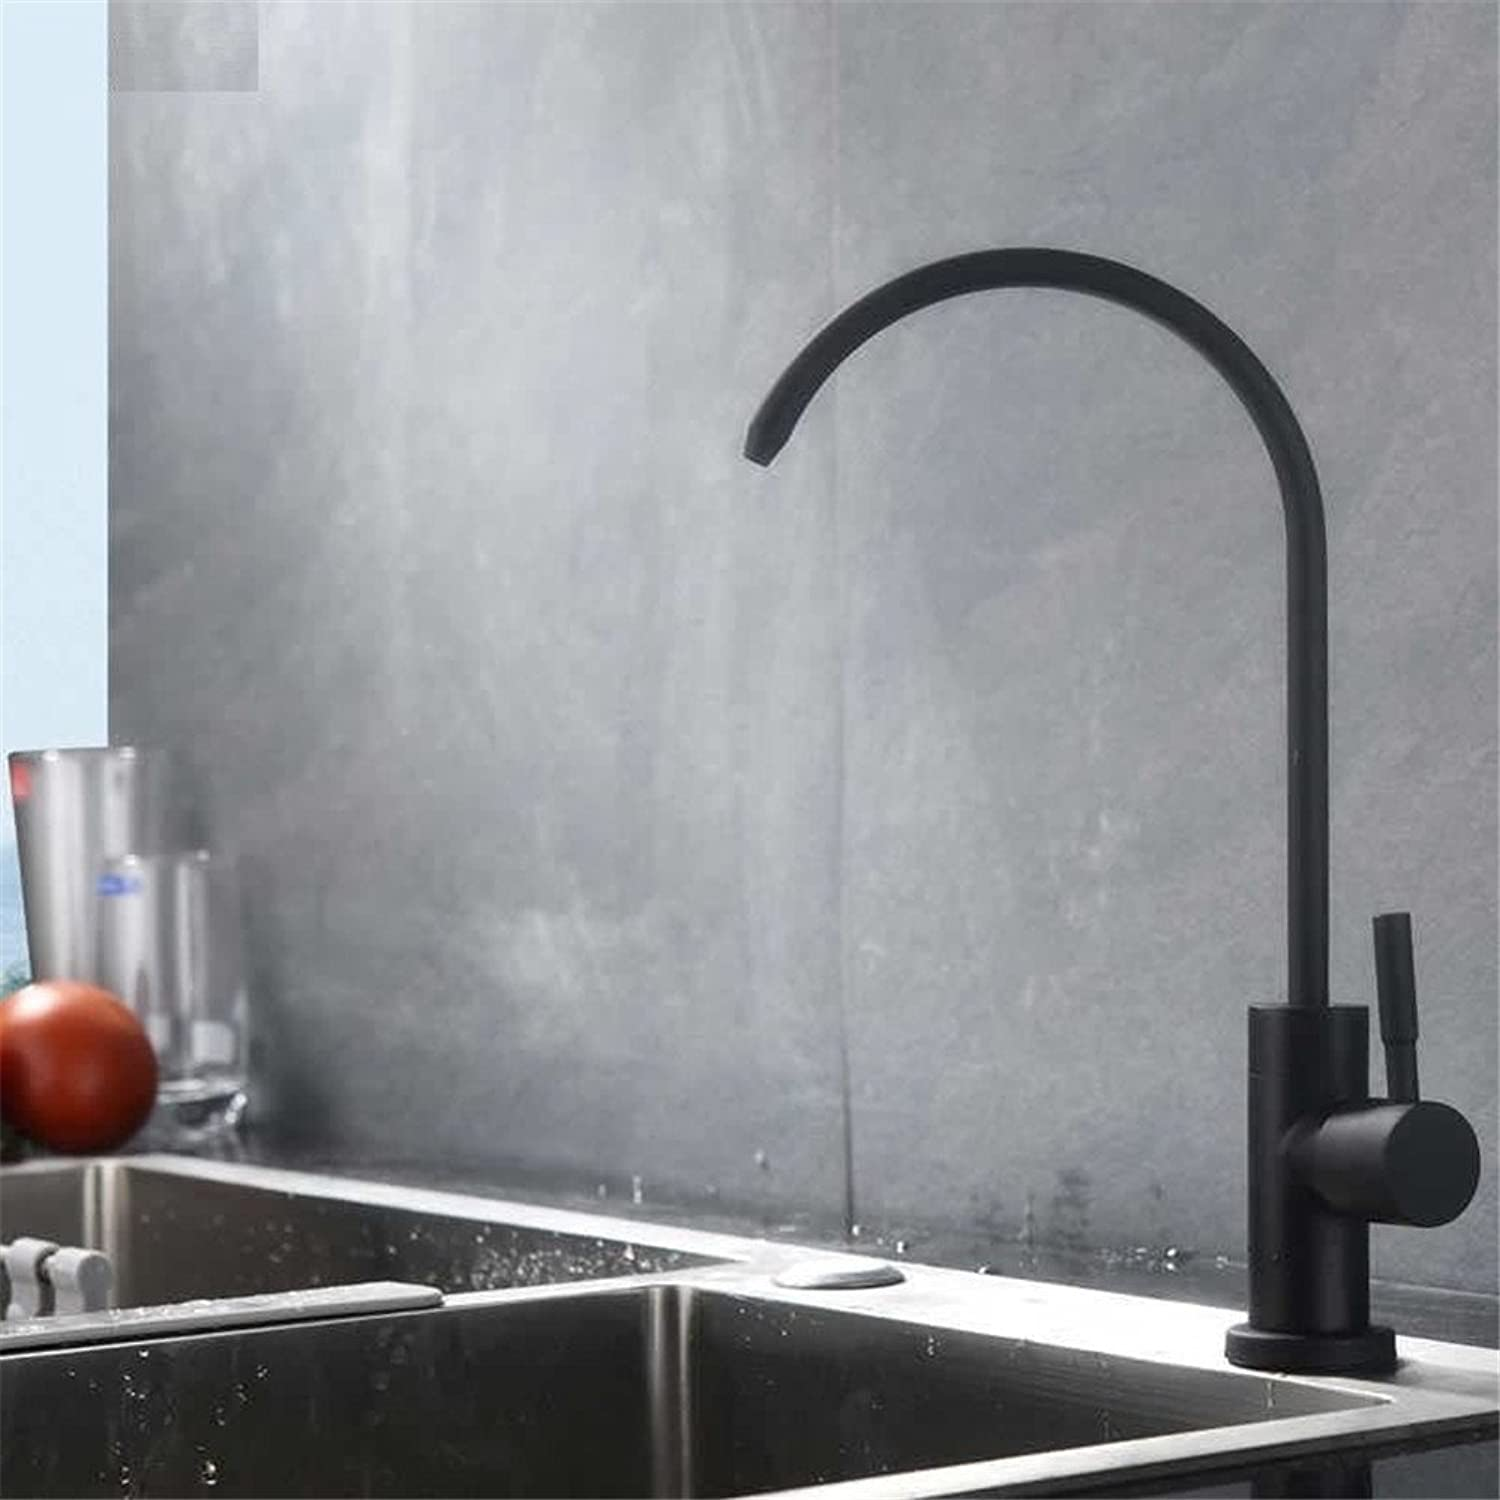 Mucert Tap,Straight Drinking Tap,Stainless Steel,Black,Kitchen Basin Faucet